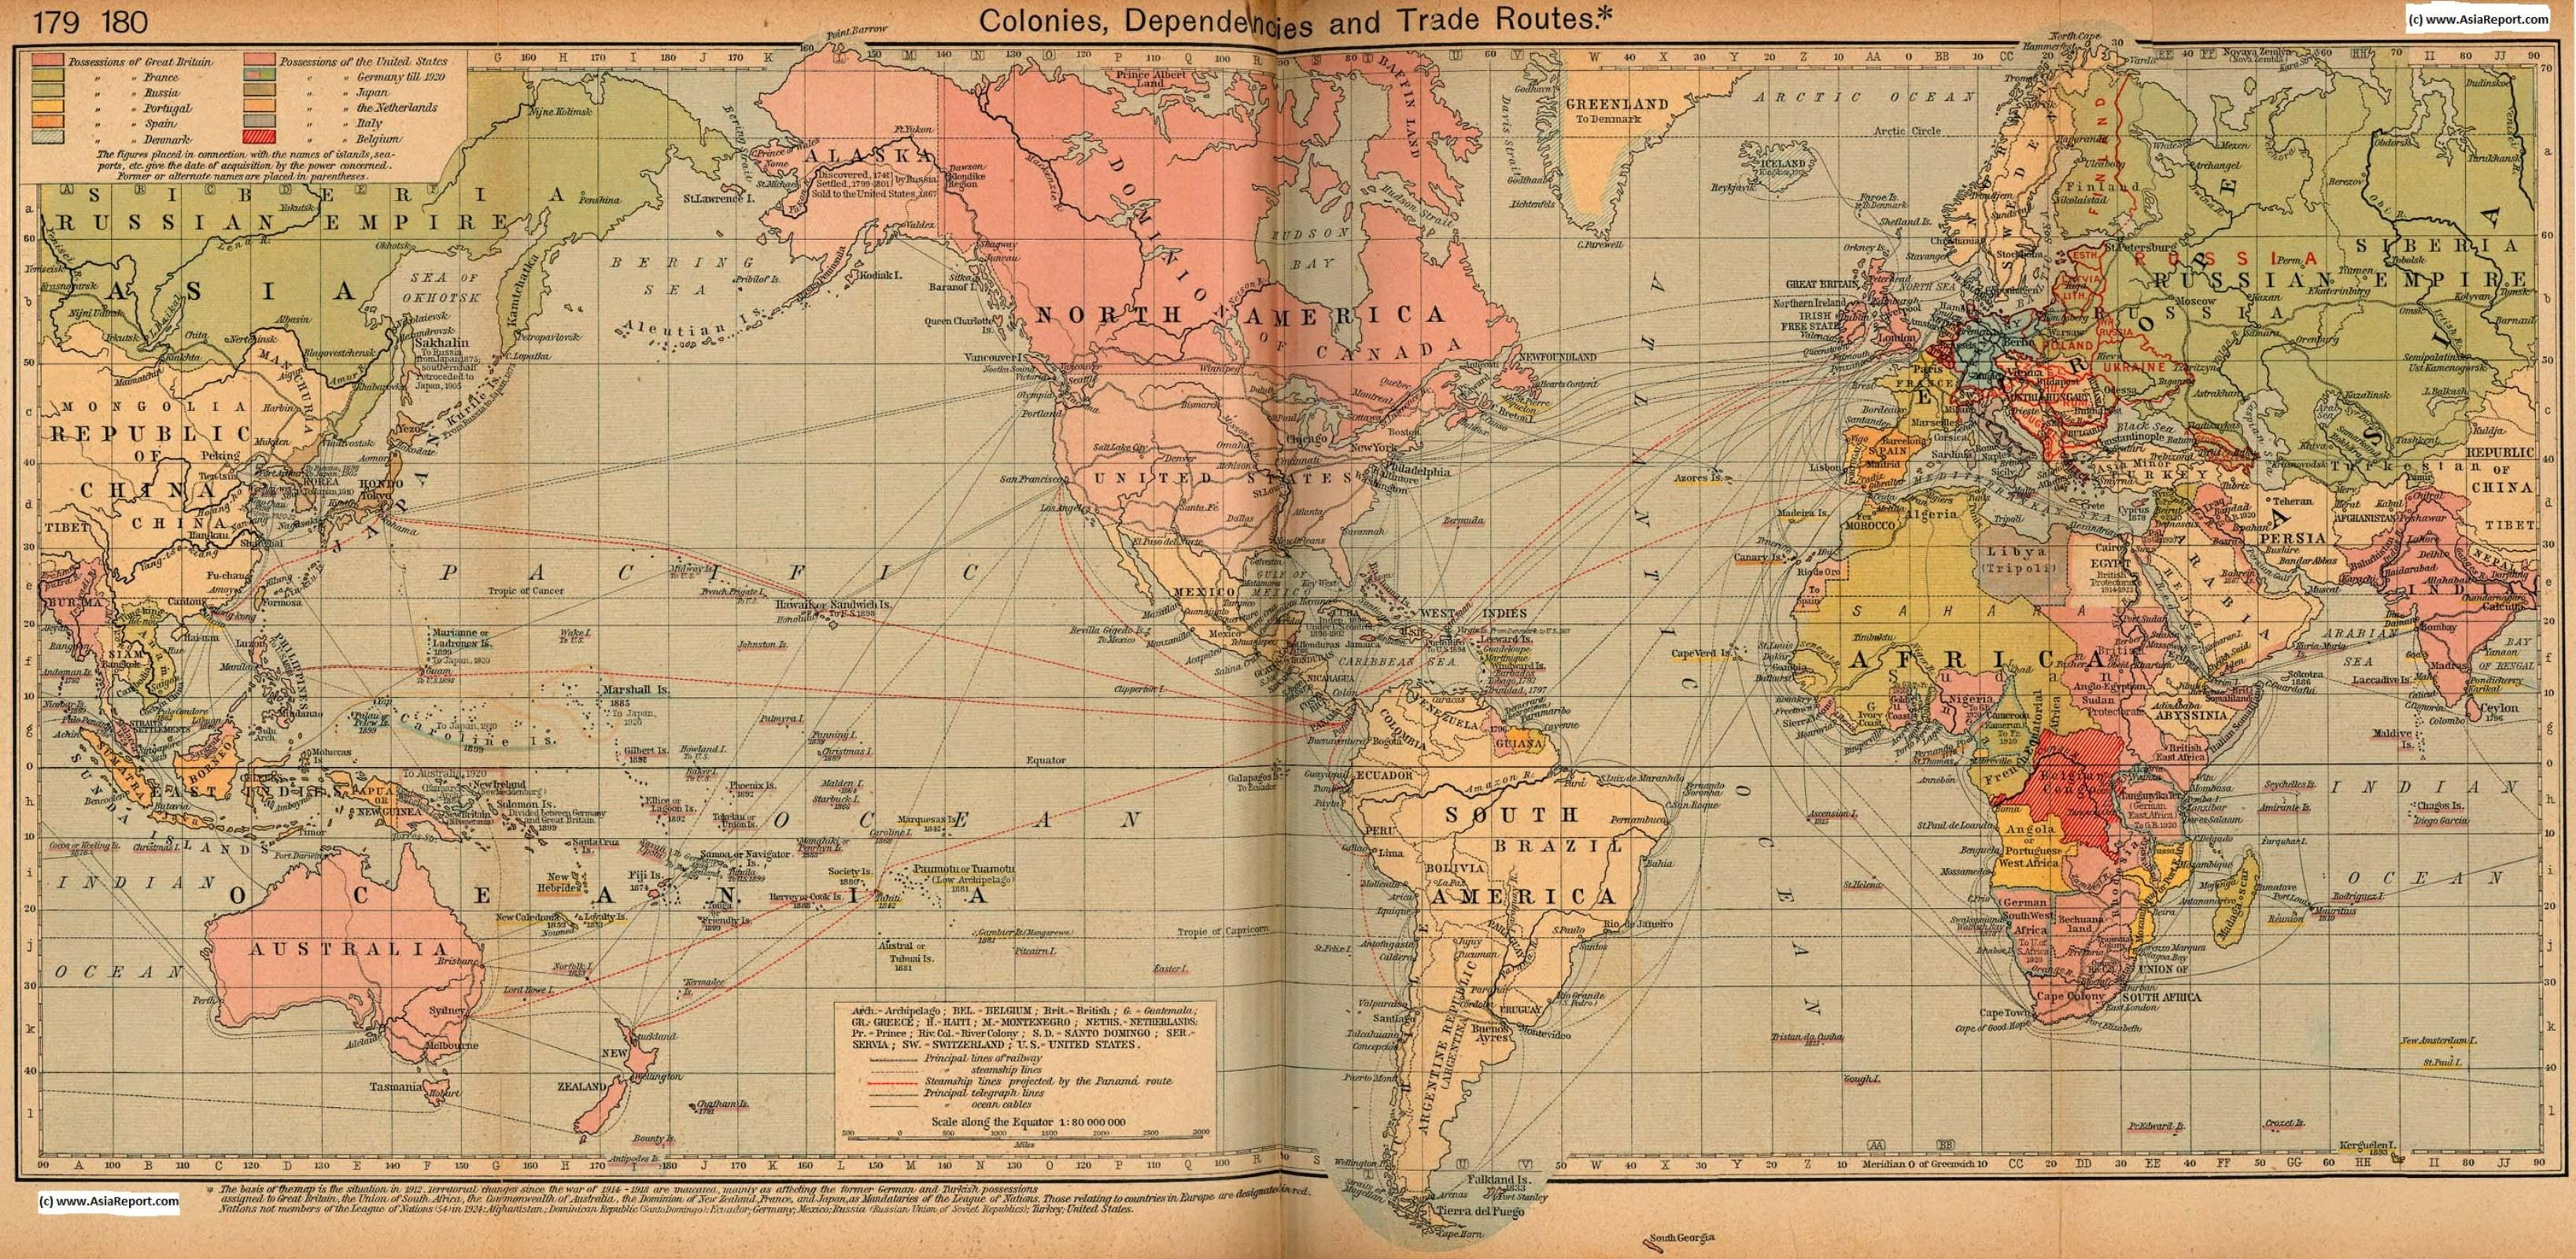 map asia history colonialism world colonial possessions 1912 ad 1918 ad